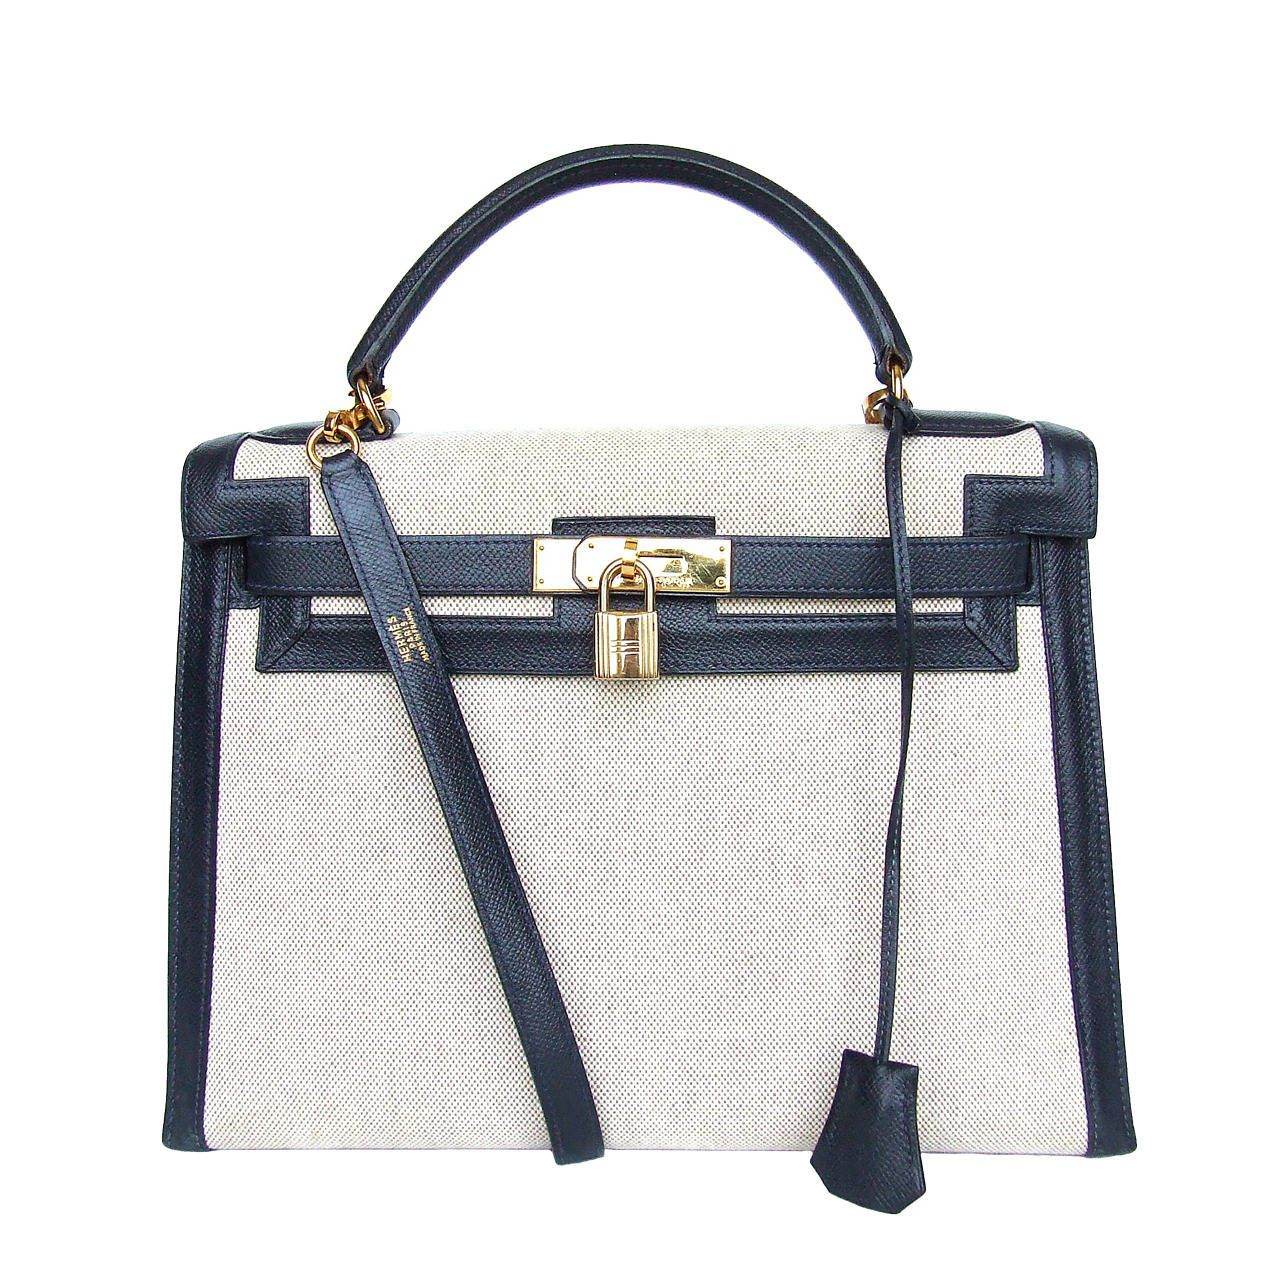 authentic hermes kelly 32 bag sellier bi matiere canvas leather gold hdw we love herm s. Black Bedroom Furniture Sets. Home Design Ideas